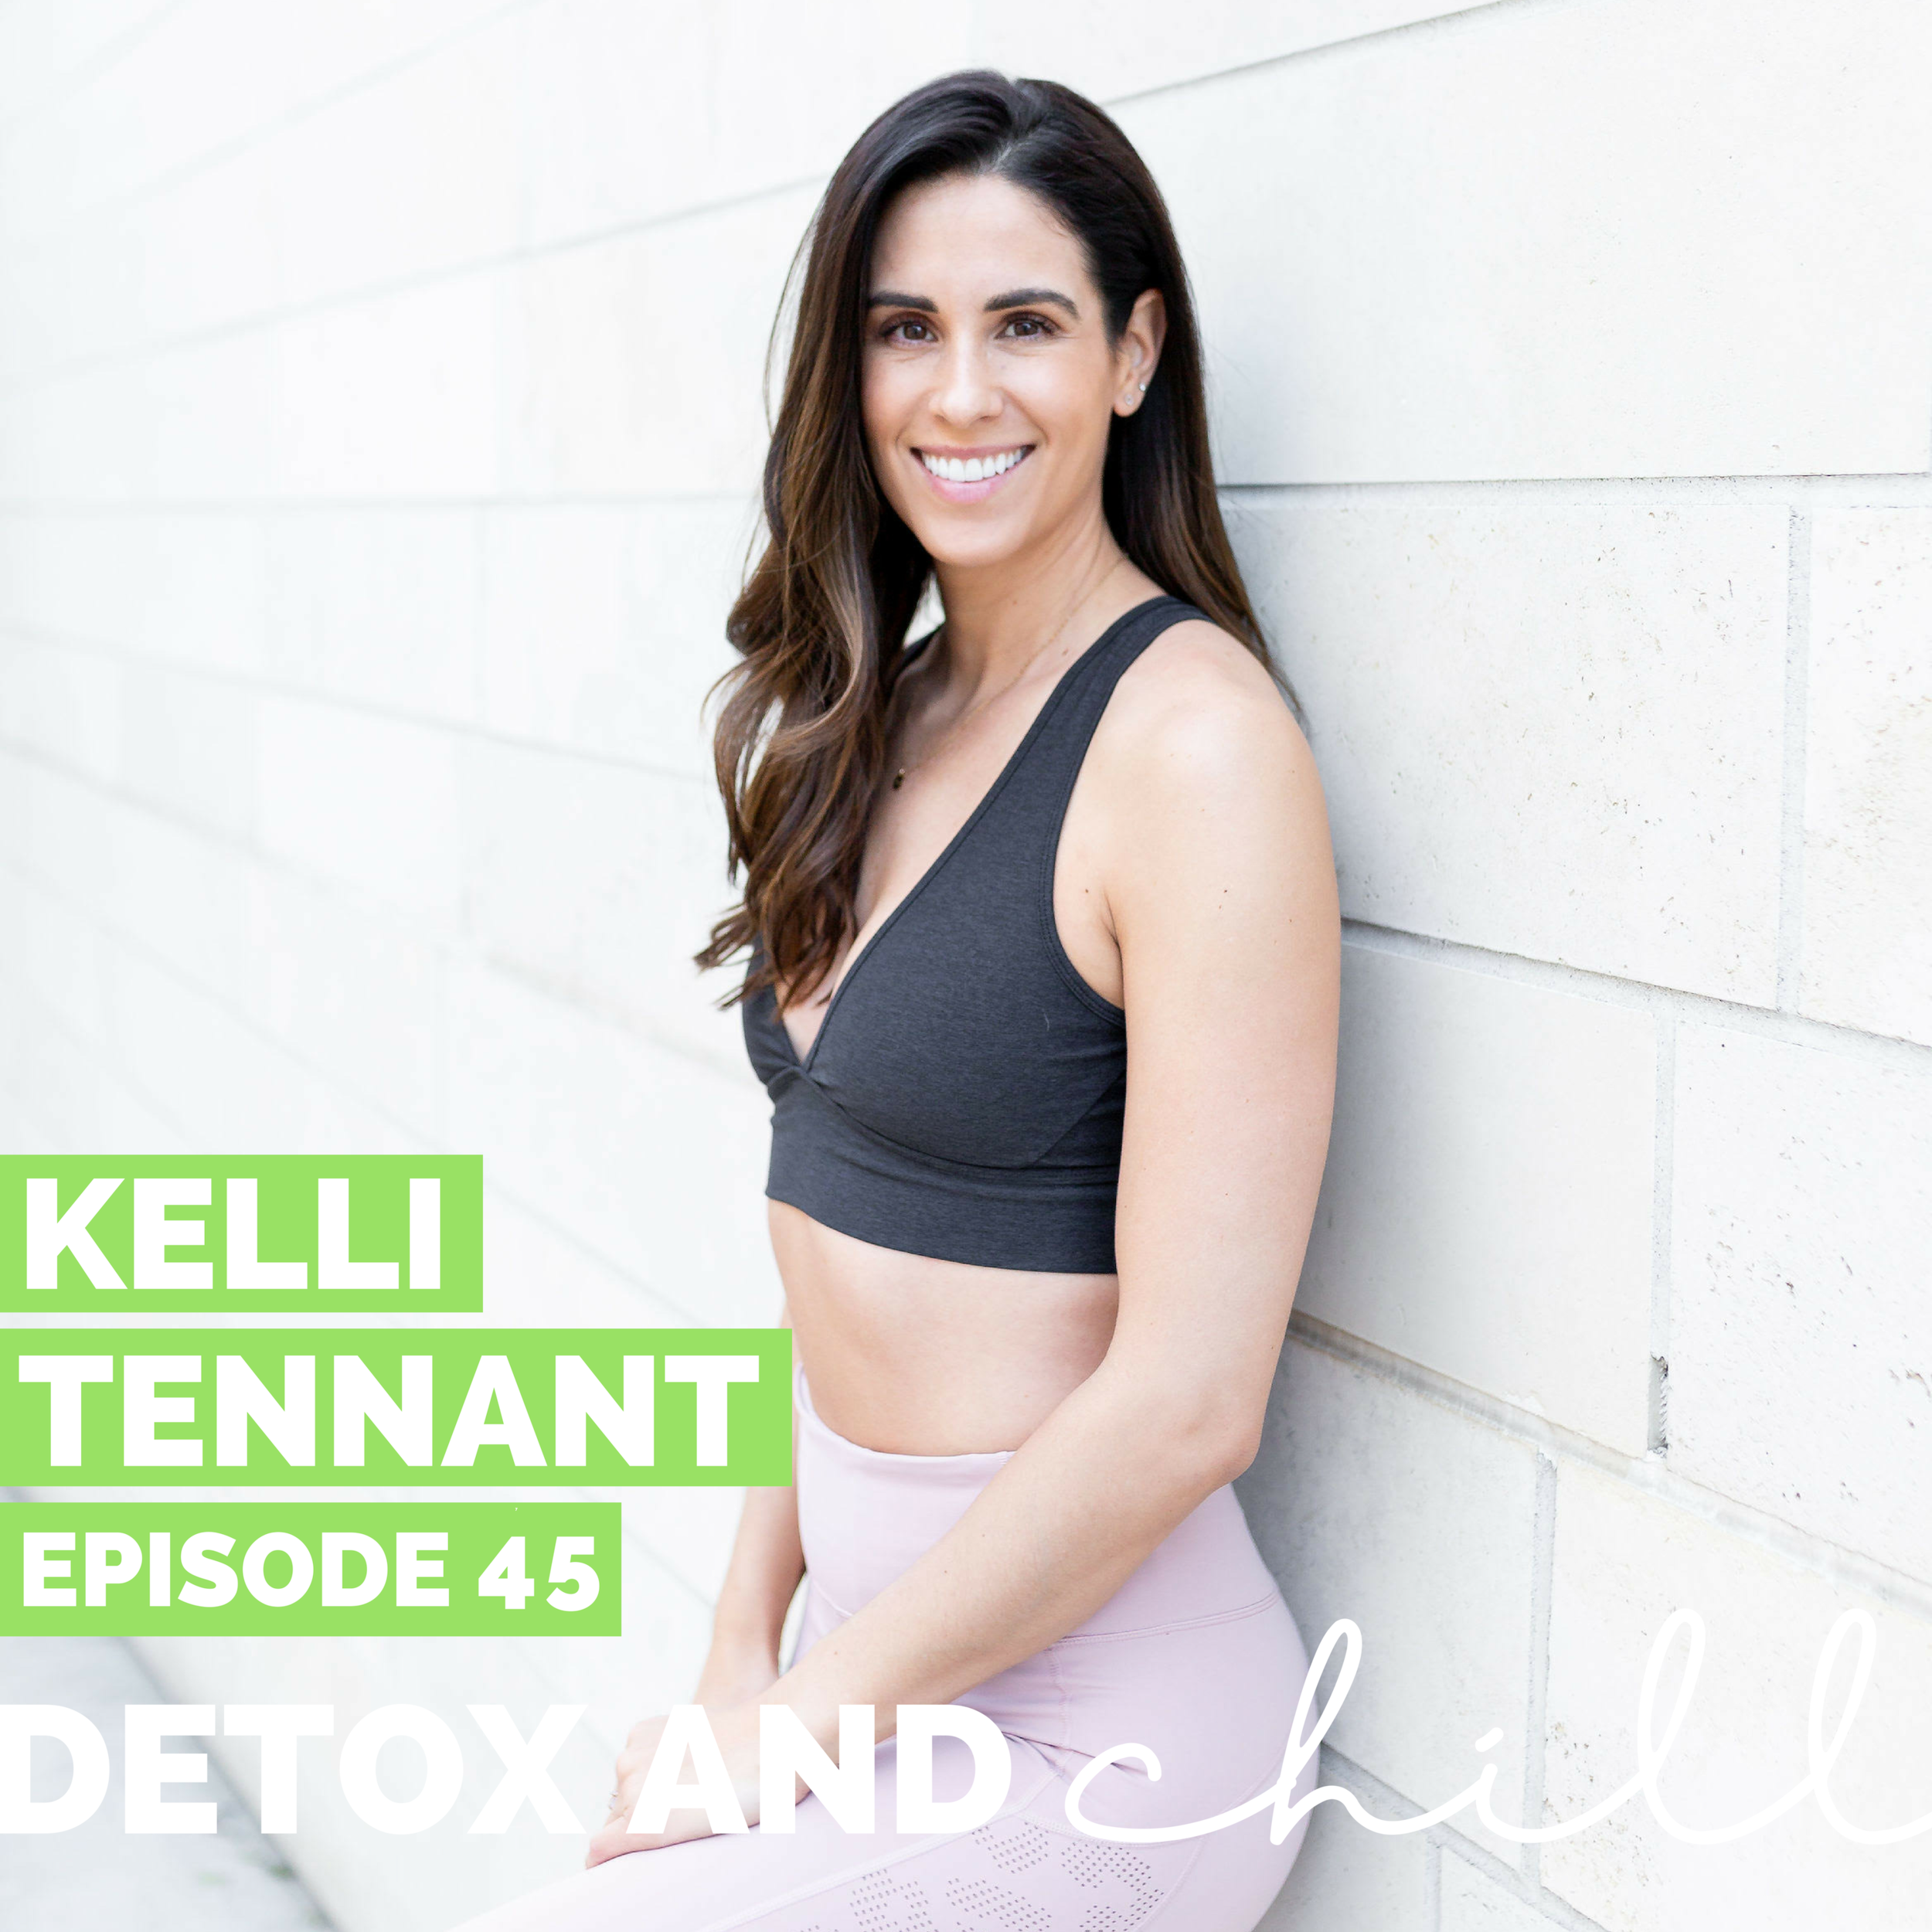 "Episode #45: Kelli Tennant // Founder of The Platform // Choosing Yourself - Hi lovely friends! First things first, we want you all to come to our gut-health event on April 4th! We will be diving in with Charity Lighten, who is the CEO and Chief Nutritionist at Silver Fern. We'll start with an amazing Core Power workout, followed by a panel on gut-health and wrapping up with dinner from Dig-Inn. Sign up at the following link!https://www.eventbrite.com/e/go-with-your-gut-detox-chill-x-silver-fern-brand-tickets-57892653485This week we have an absolutely AMAZING guest on the podcast. Kelli Tennant is a former TV host for the Lakers and Dodgers. Kelli recently launched her OWN podcast, The Platform Podcast, to have critical conversations that dive deep into the harsh realities of chronic illness, the inspiring stories of entrepreneurs and the powerful women supporting women movement.In 2007, Kelli was diagnosed with multiple autoimmune disorders, which led her to the discovery of a non-toxic, holistic lifestyle. As her own advocate for over 10 years battling countless illnesses, she has become one of the leading voices in the health and wellness community, educating women on the latest healing modalities, ways to clean up their daily routine, and how to support and empower other women.We dive deep in this episode and chat about…-Managing a chronic illness while working full time,-Letting go of the ""people pleasing"" mindset and doing what is best for YOU,-Being a woman in a primarily male-dominated field,-How time off of work shaped her mindset,-How we can best support other women in our fields.We'll both definitely be listening to this one back – it was that good.Follow Kelli on Instagram here, her podcast here, and her website here.We are so proud and excited about this episode and are so excited to hear what you think - let's start normalizing these conversations together. We'd love to continue this conversation in our Facebook group and on Instagram. Our Facebook group is a safe space for anyone who joins, so don't forget to check us out there. Just search *SUPER EXLUSIVE* Detox & Chill Podcast Group. As always, don't forget to follow along with us on Instagram (@detoxandchillpodcast) and join our Facebook group. We love you!Xoxo,Meg & Beck"